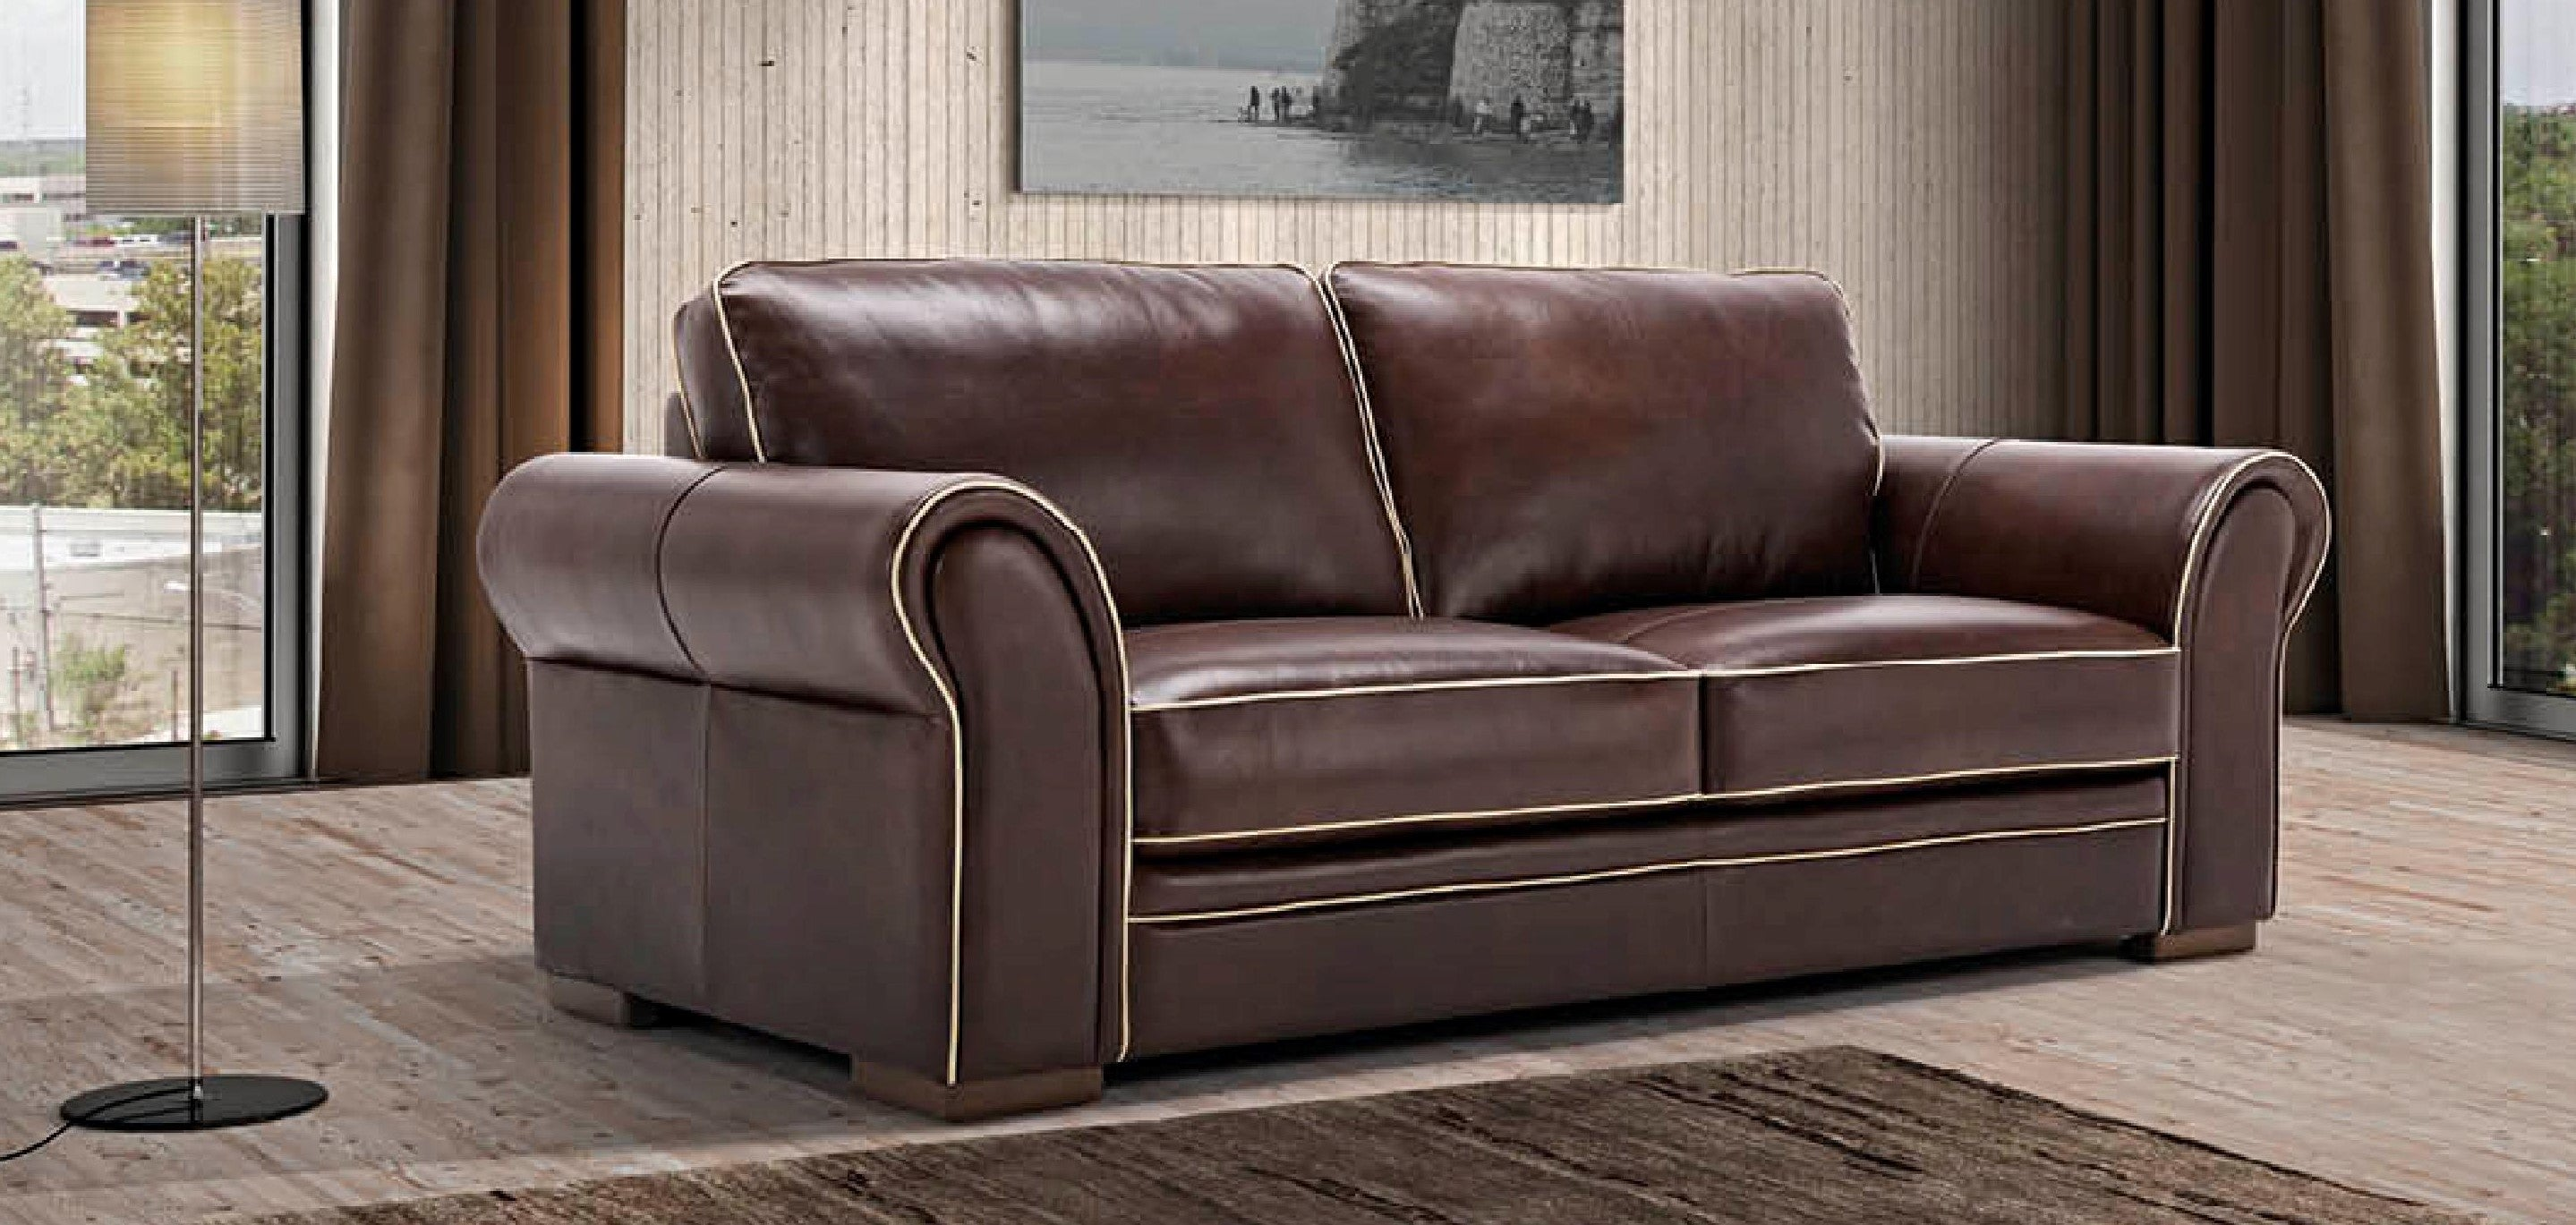 Luxury Leather Furniture in Wakefield – KC Sofas